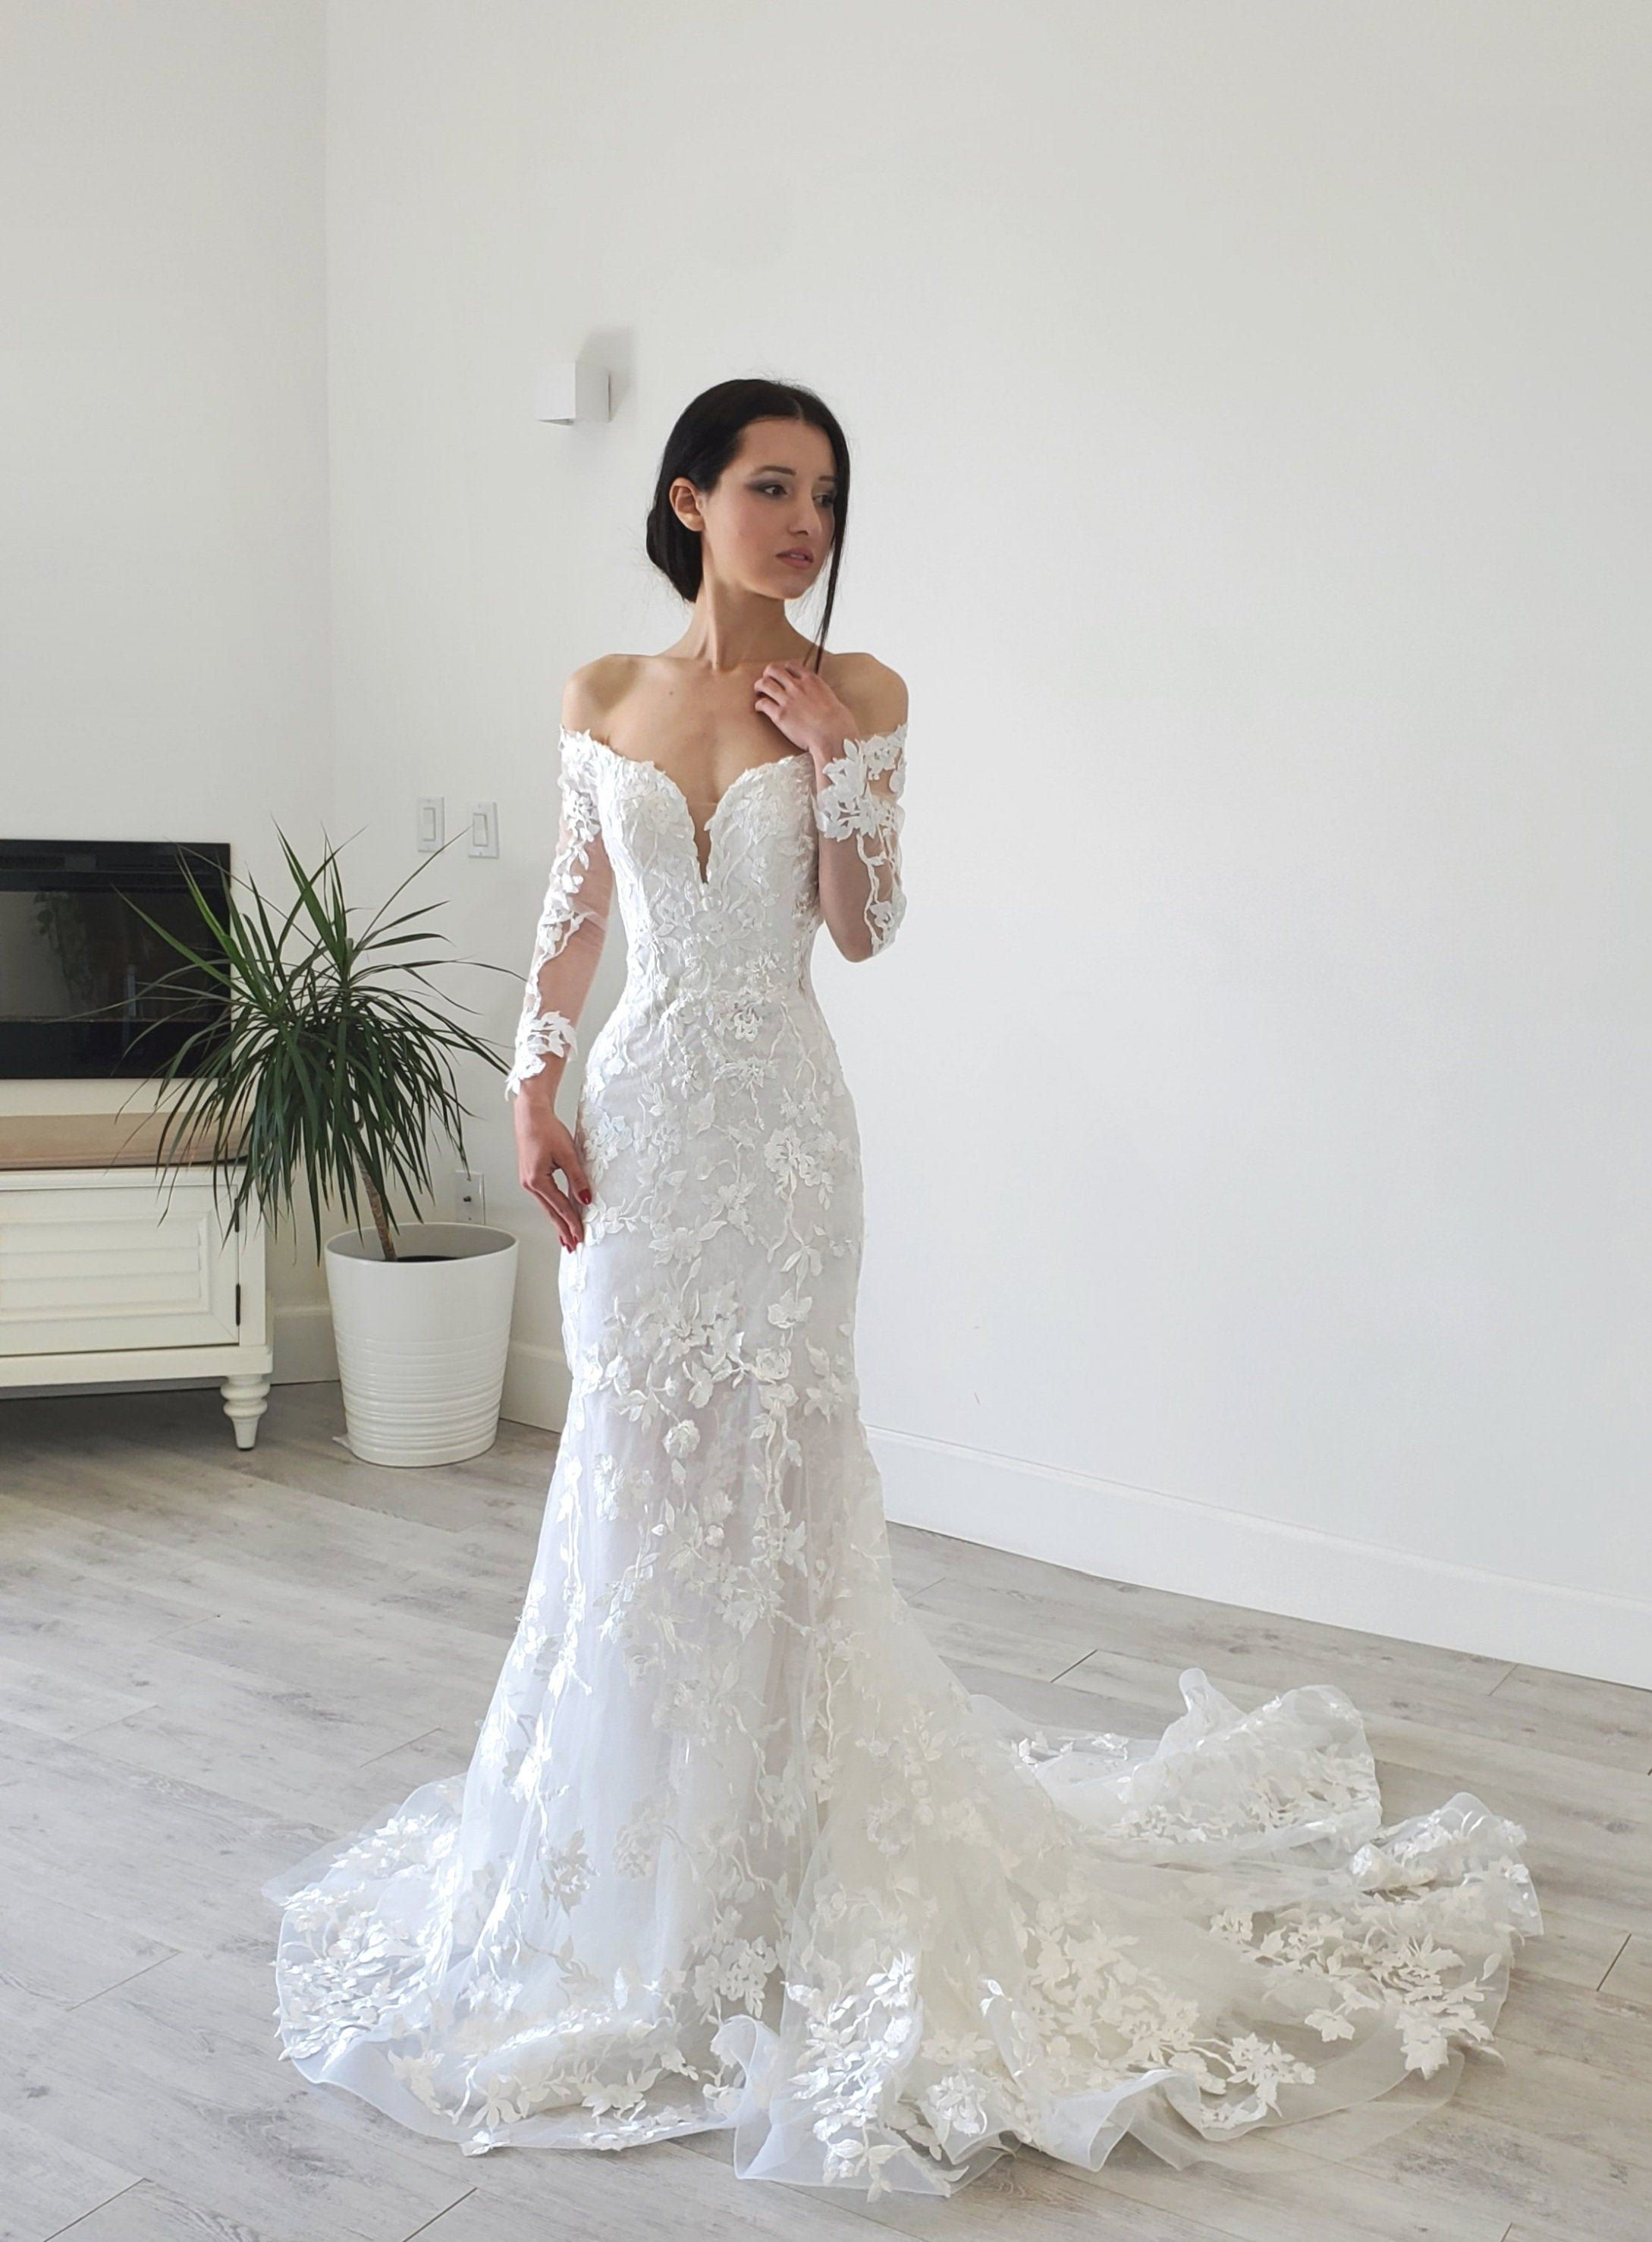 Pin On Lecocqbridal Gowns [ 2955 x 2178 Pixel ]